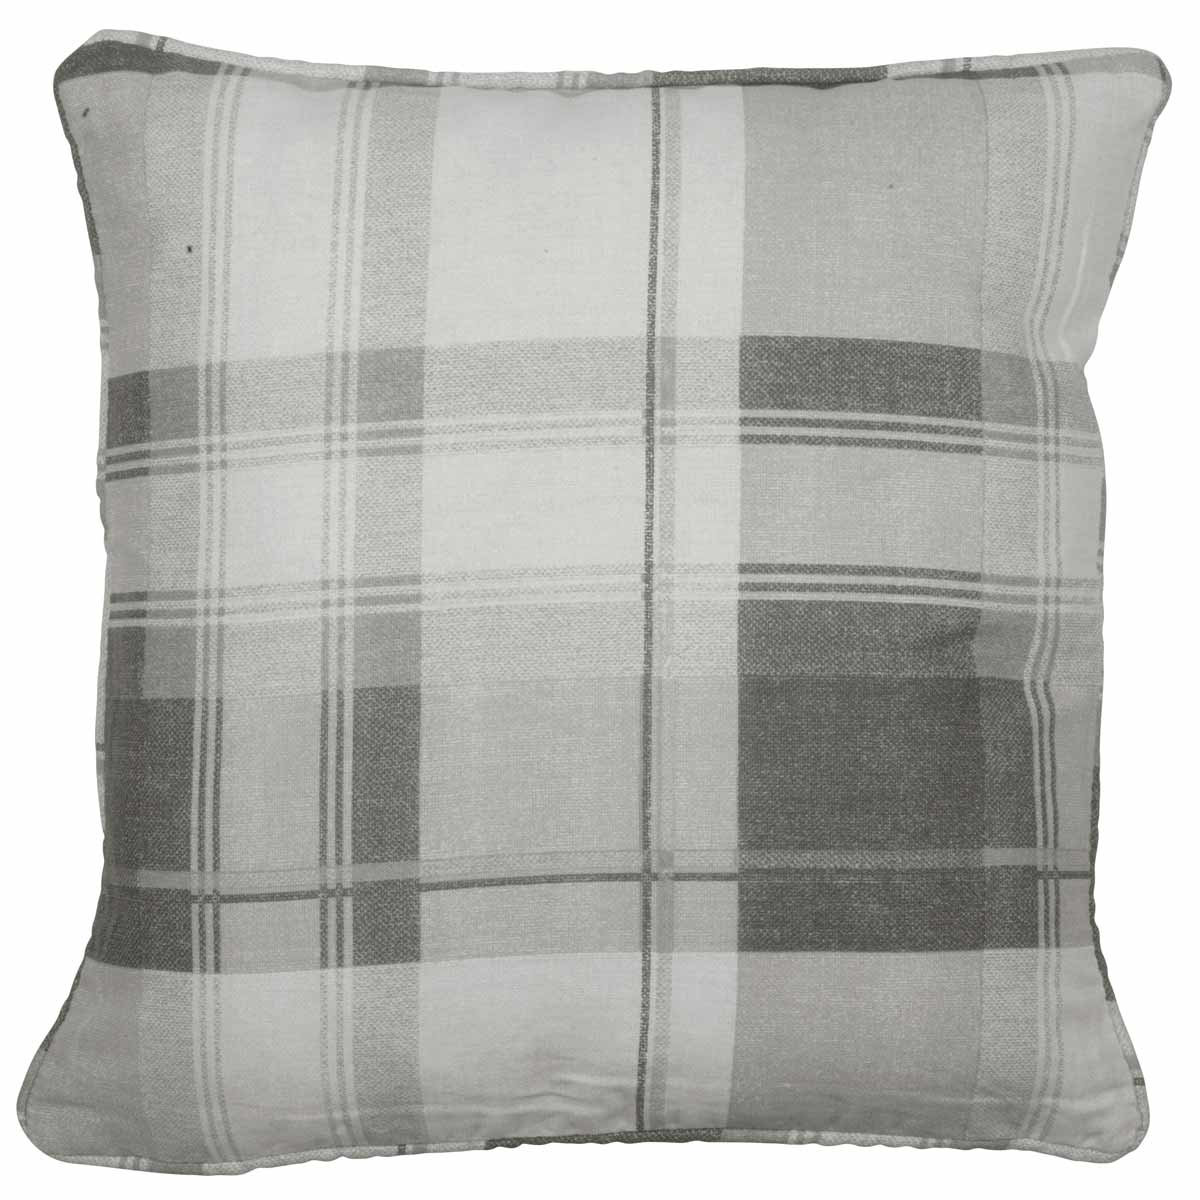 J Rosenthal Cushions And Throws Balmoral Check C/Cover Slate Picture